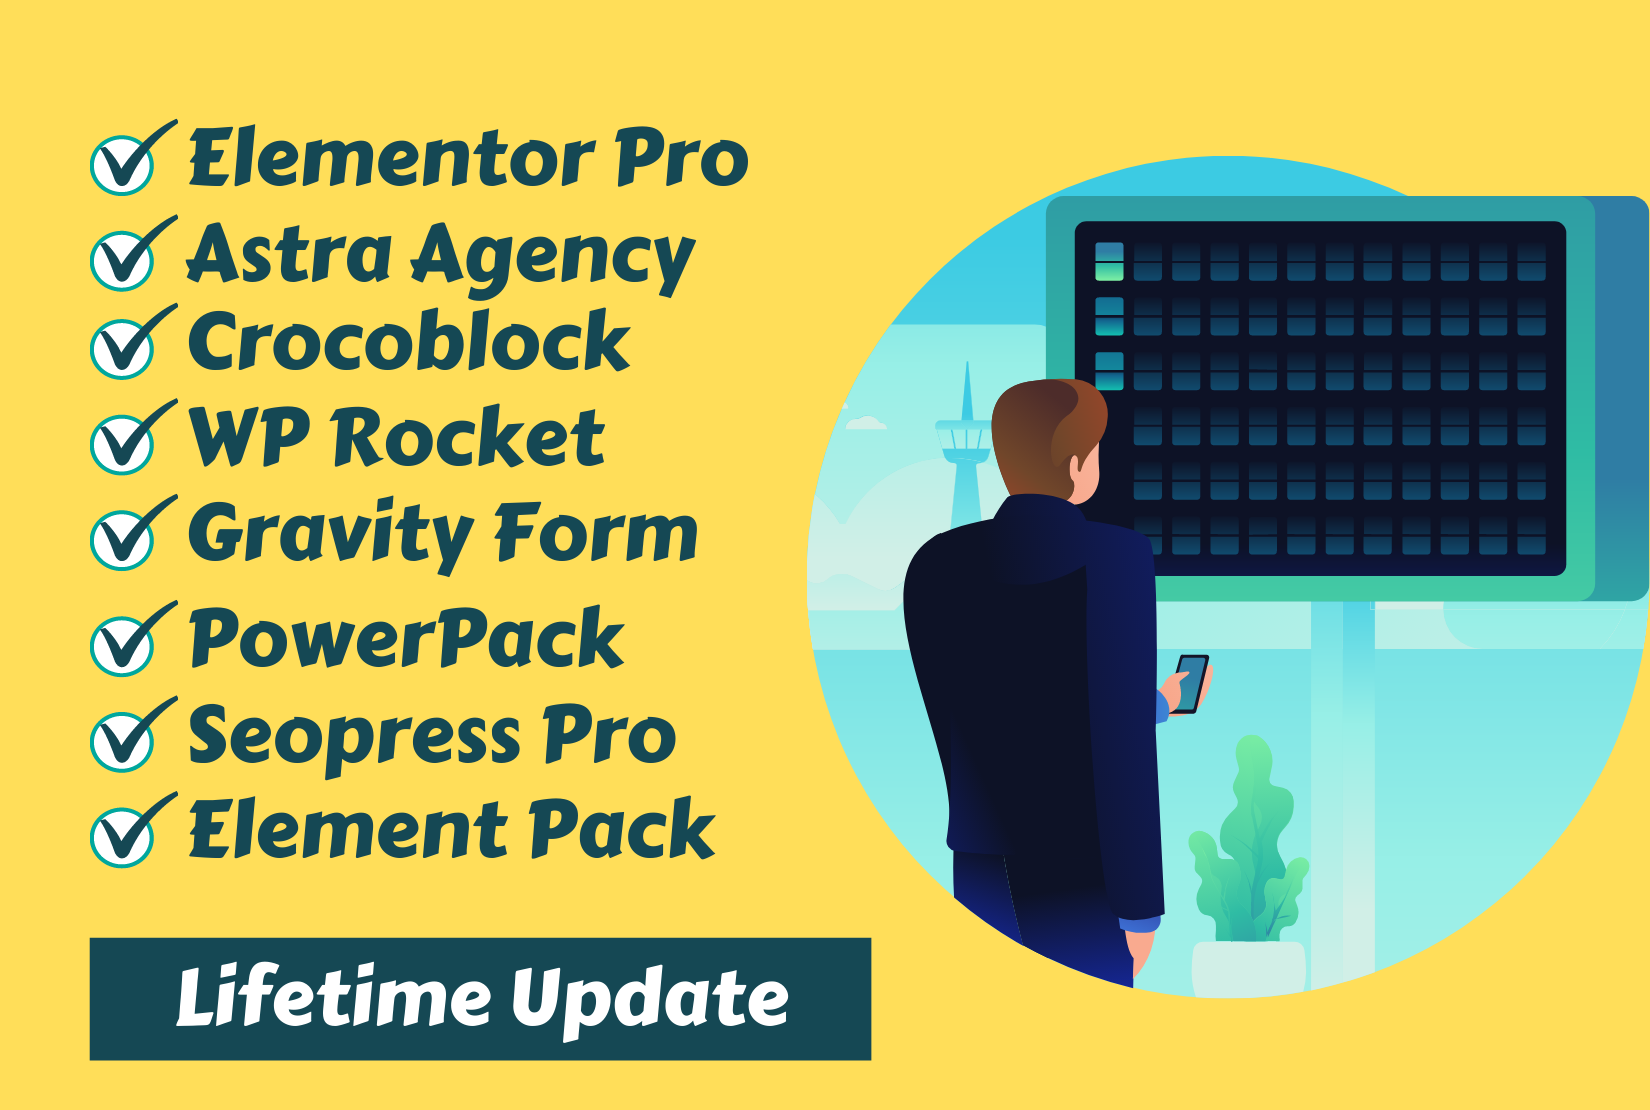 Install Elementor Pro and Astra Agency Bundle and Crocoblock WP Rocket with Official License